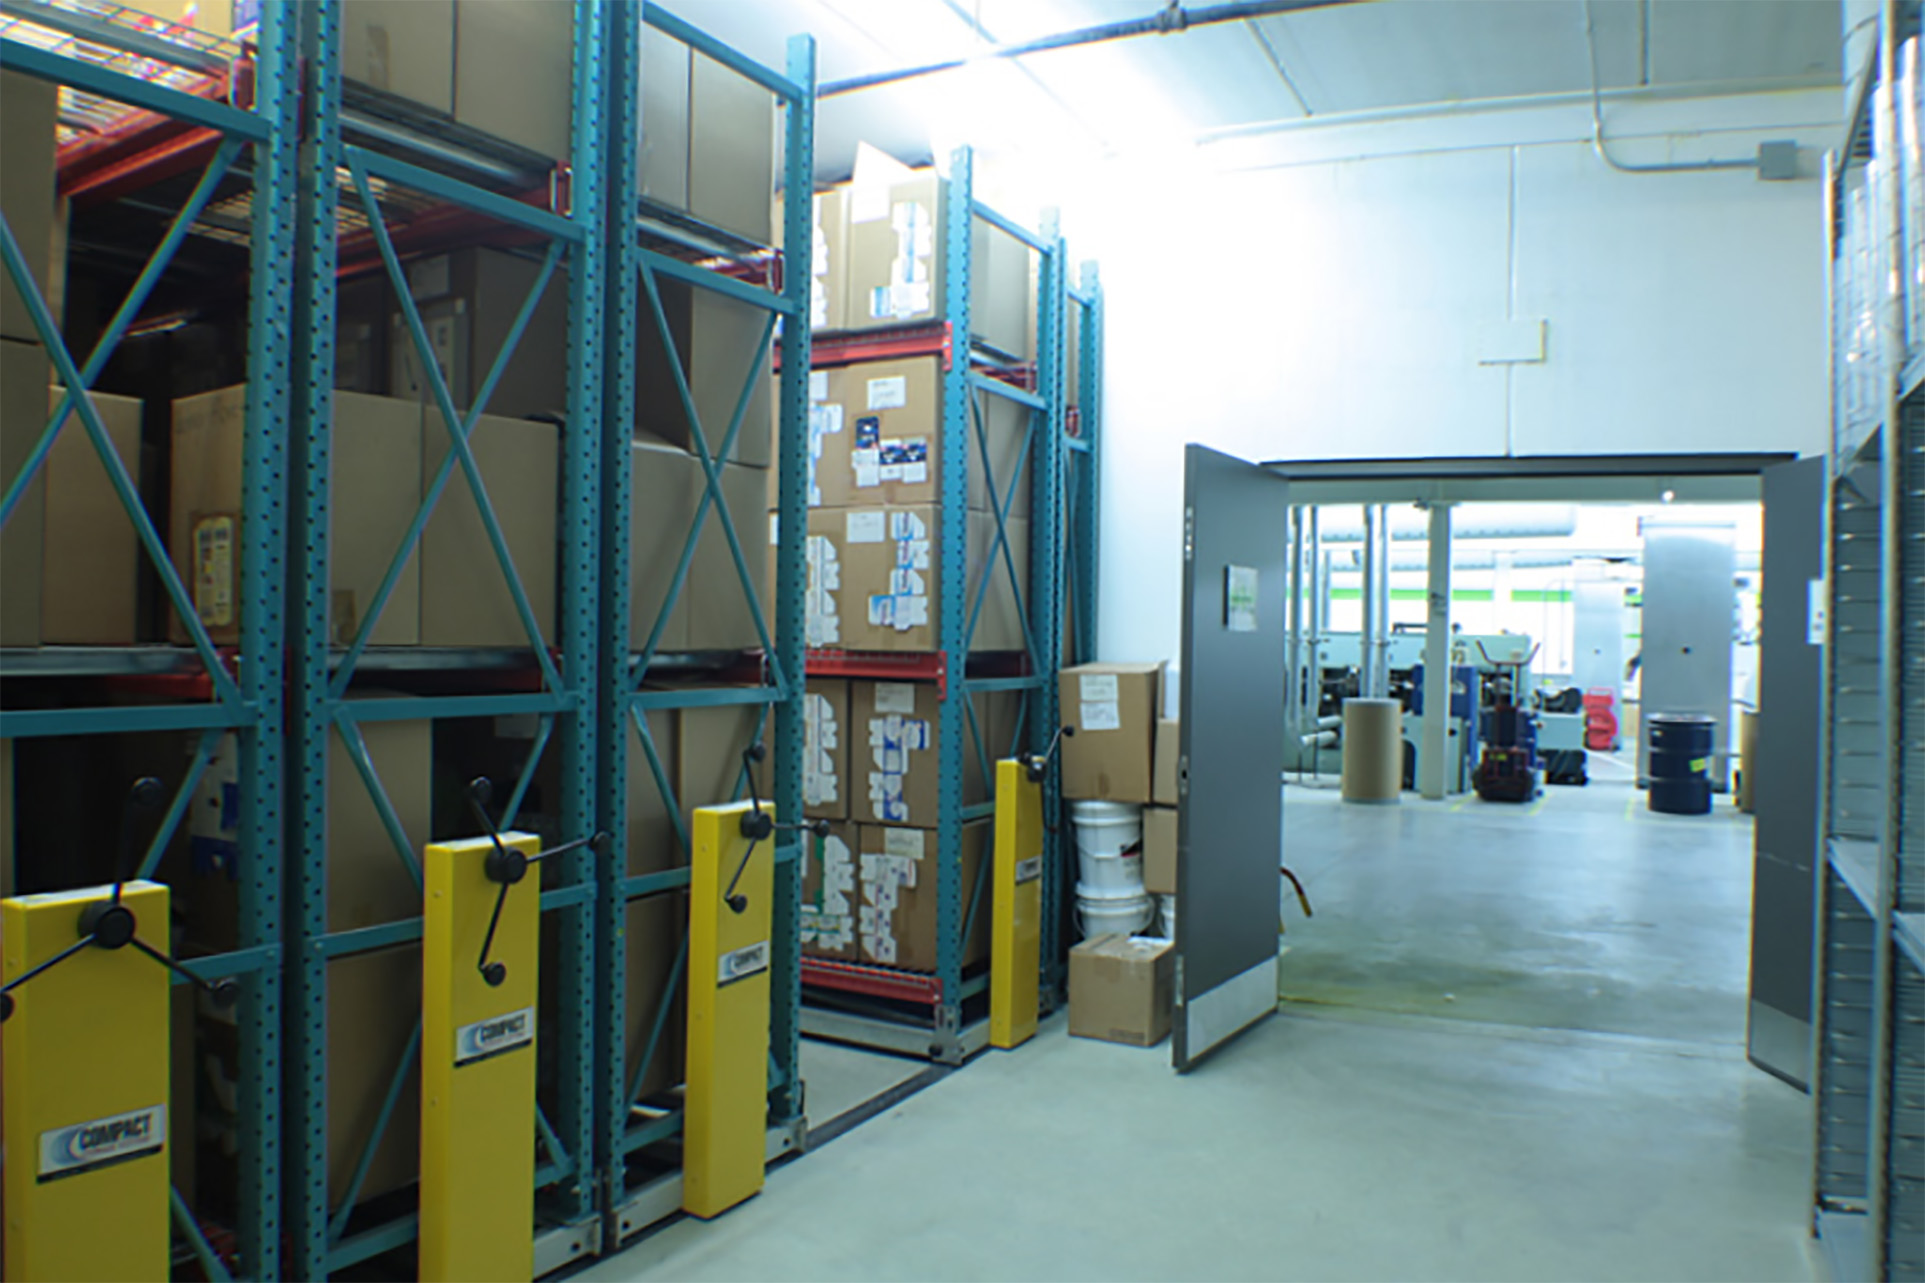 Printing supplies on mechanical assist compact warehouse racking system